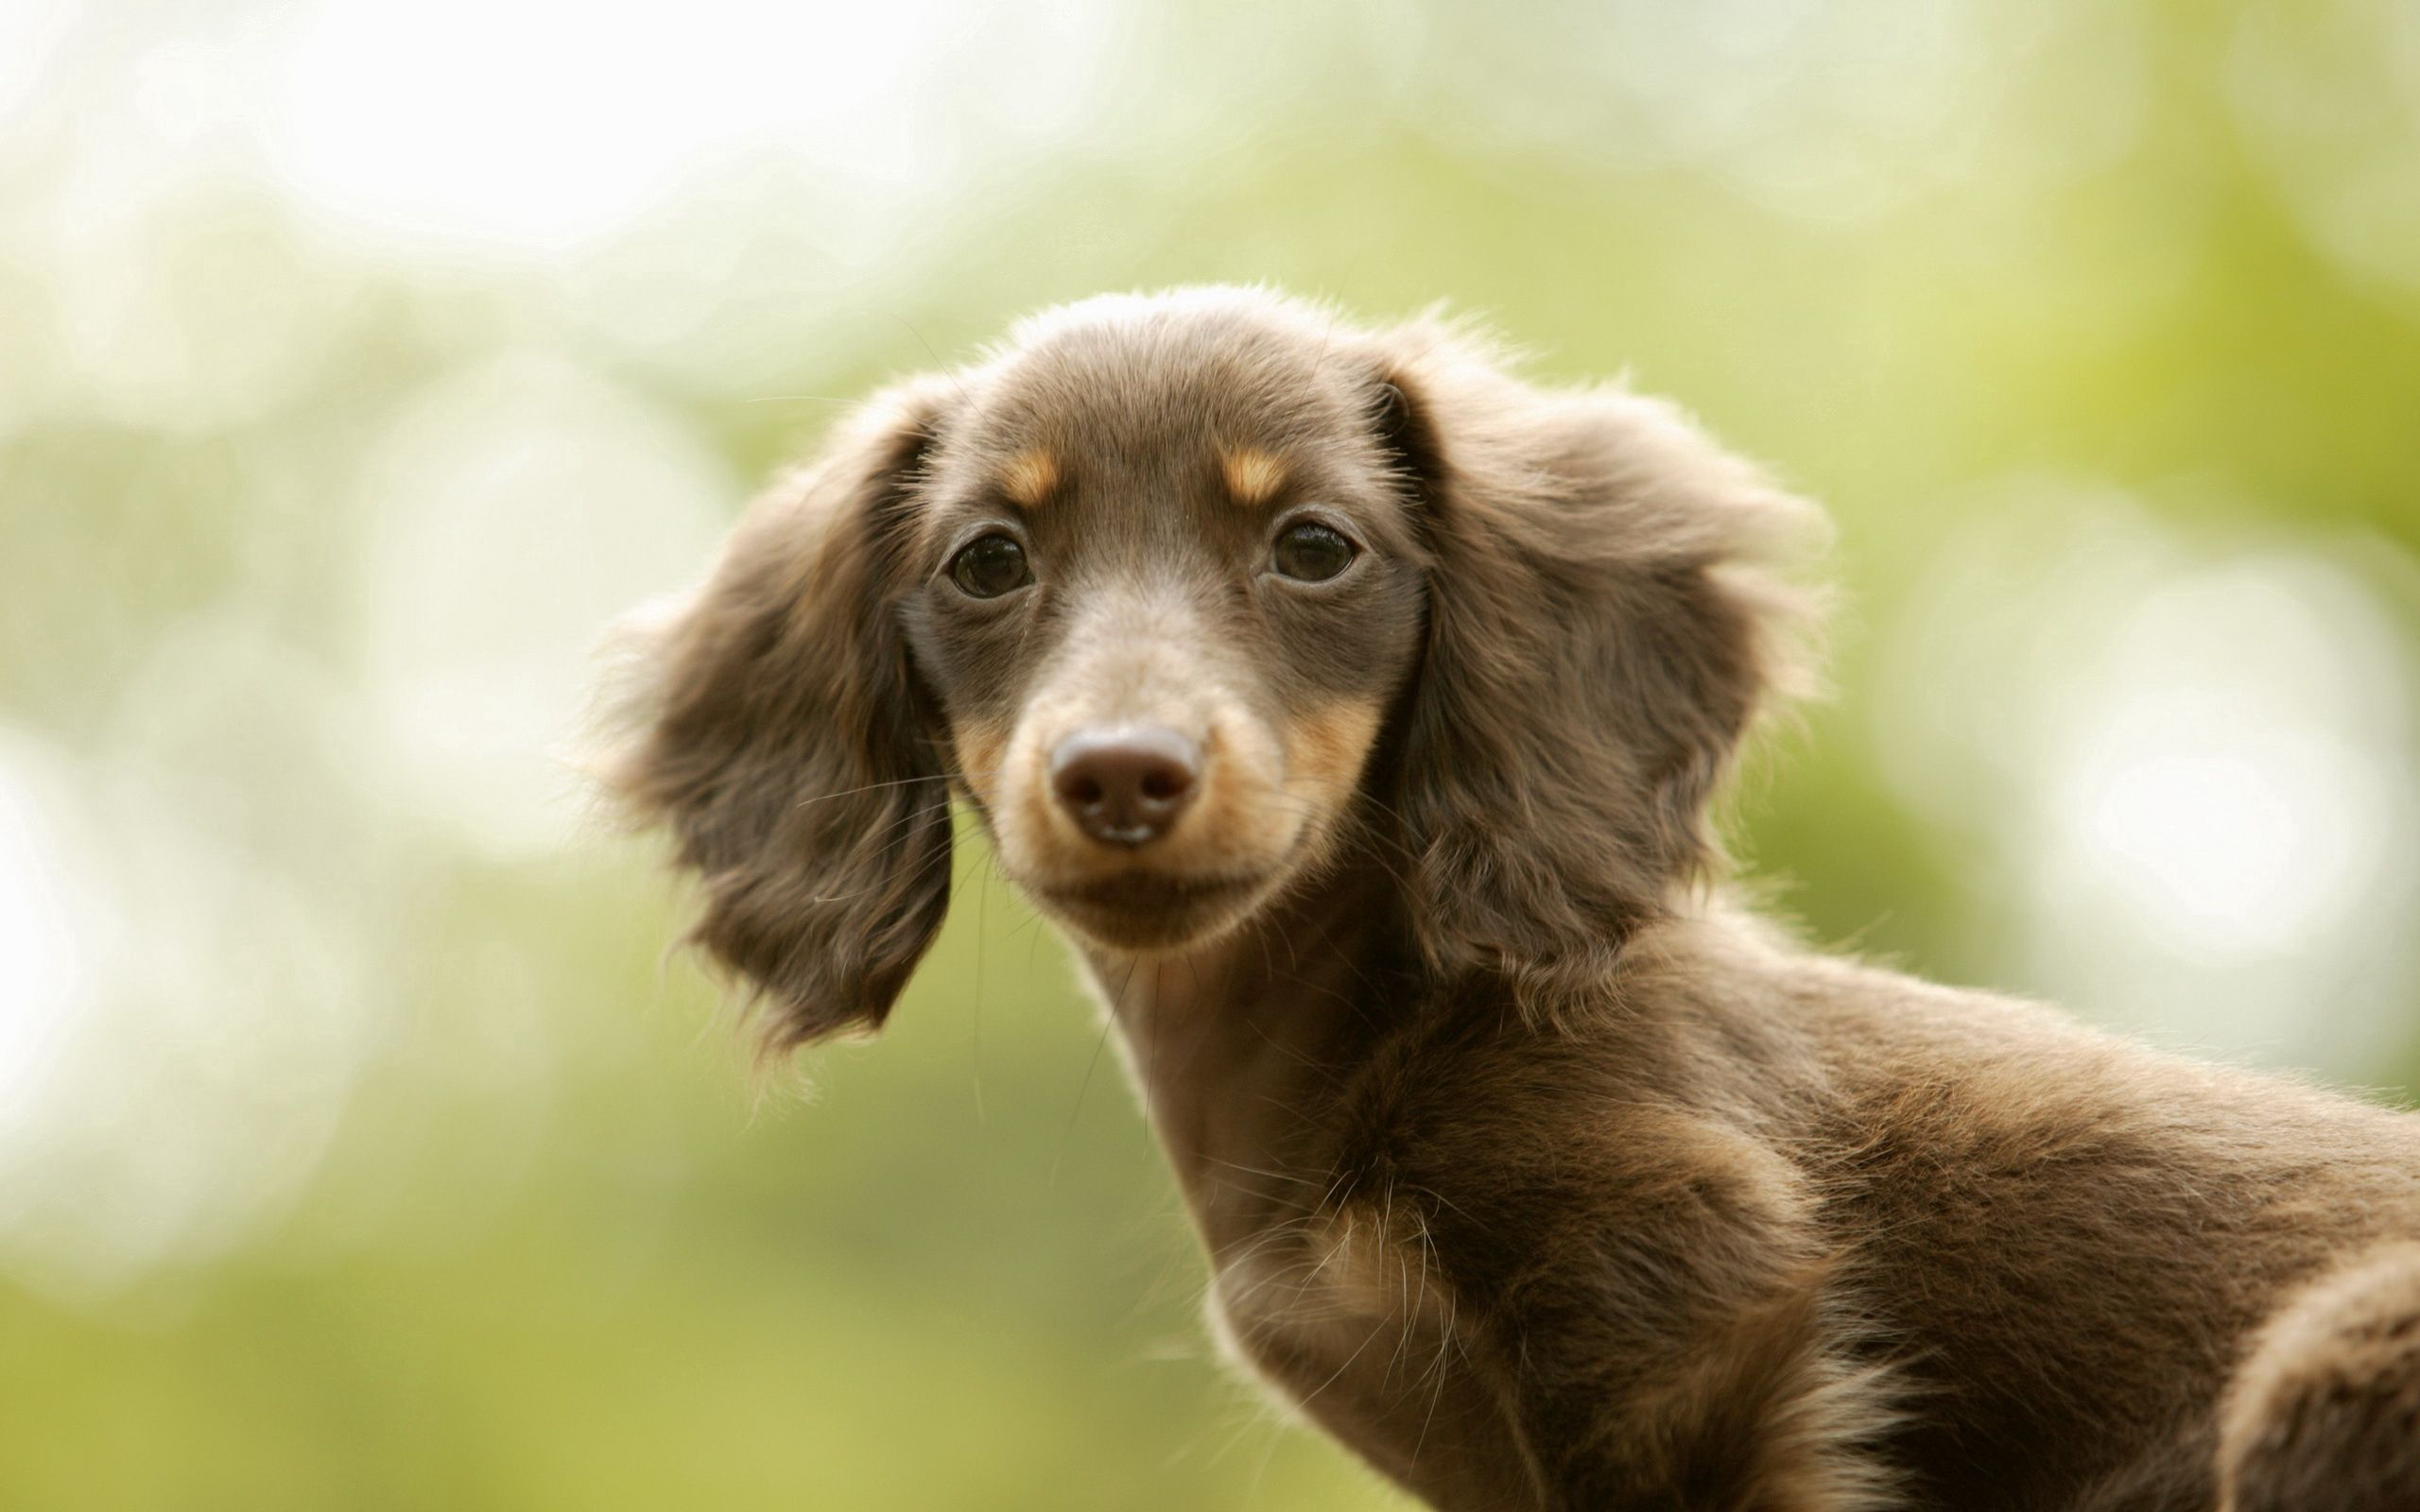 86690 download wallpaper Animals, Dog, Kid, Tot, Eared, Tired screensavers and pictures for free